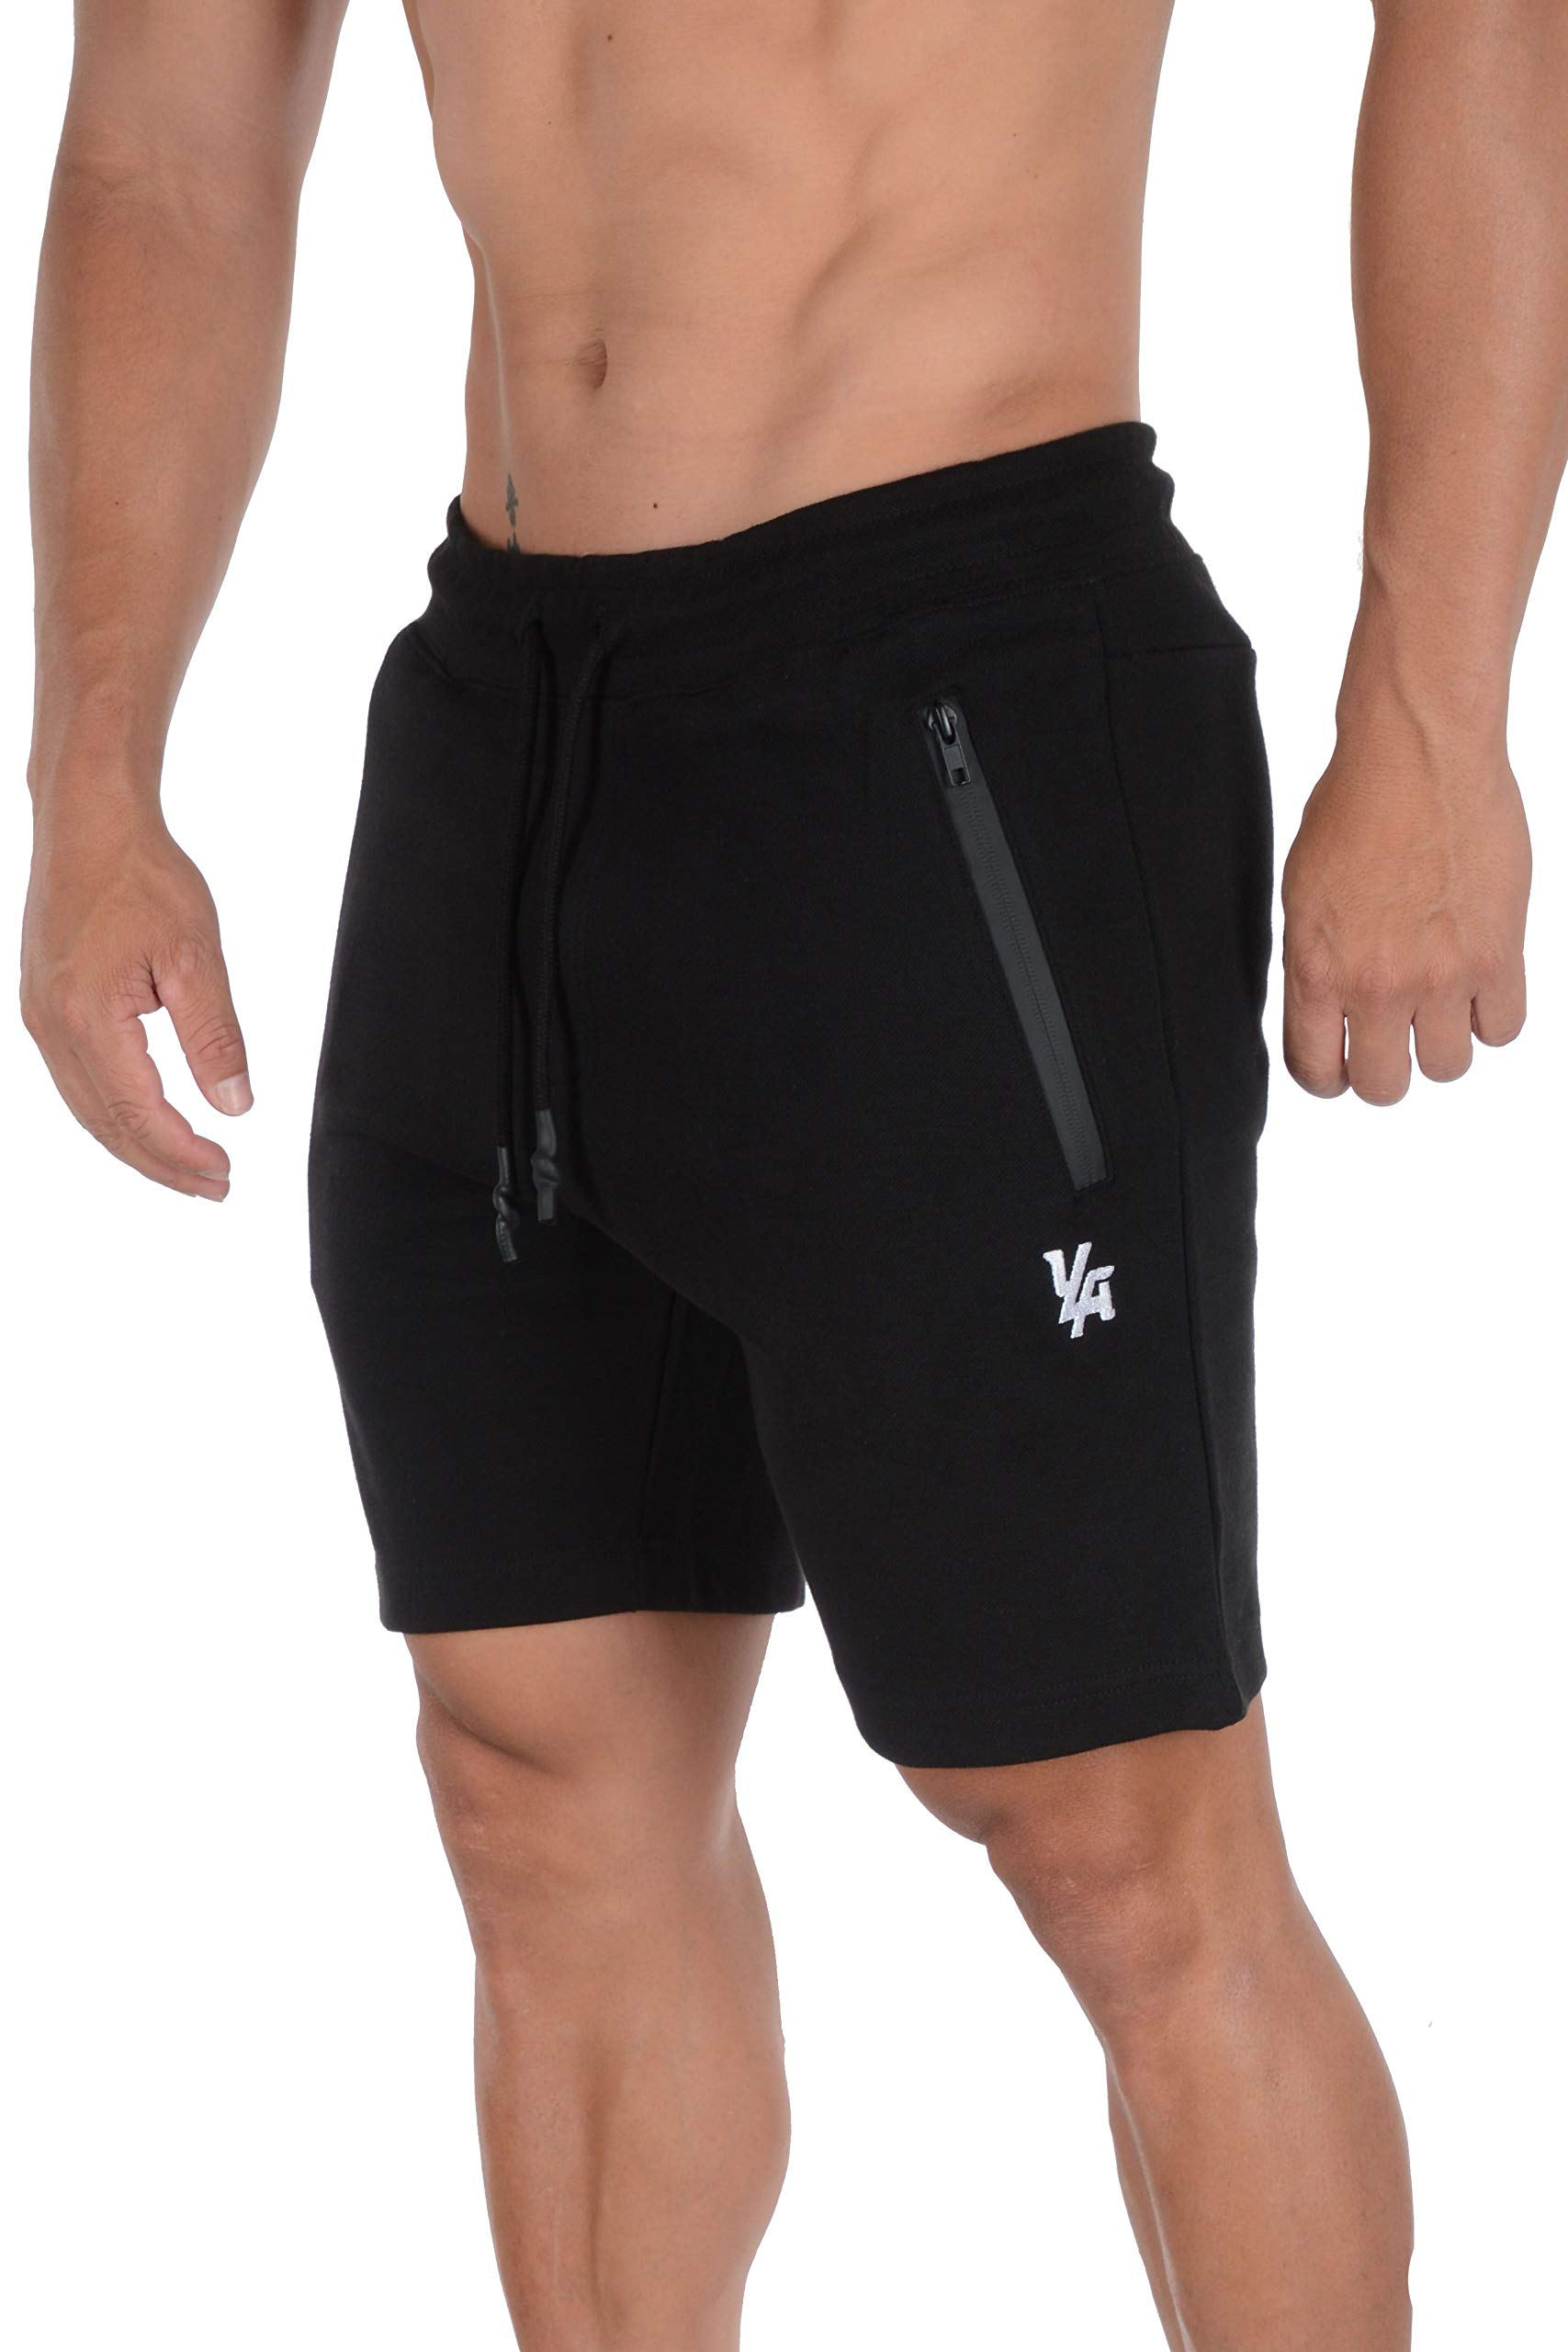 YoungLA Mens Shorts with Zipper Pockets | Casual Gym Training 108 | Black Small by YoungLA